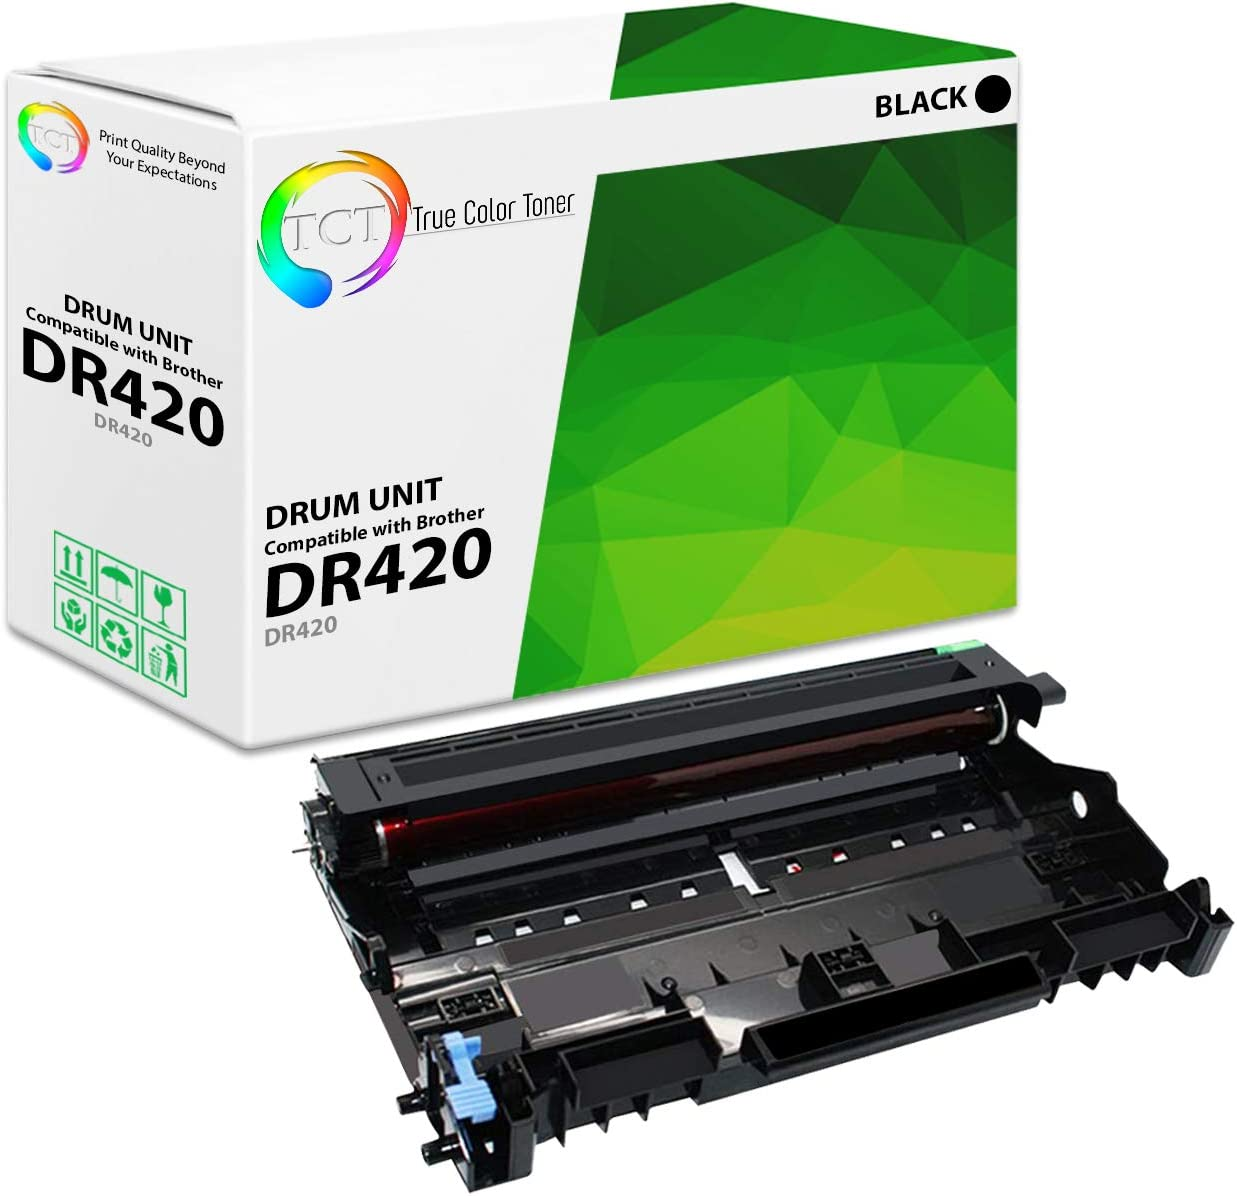 DR-420 for Use with MFC-7365DN USA Advantage Compatible Drum Unit Replacement for Brother DR420 Black,1 Drum